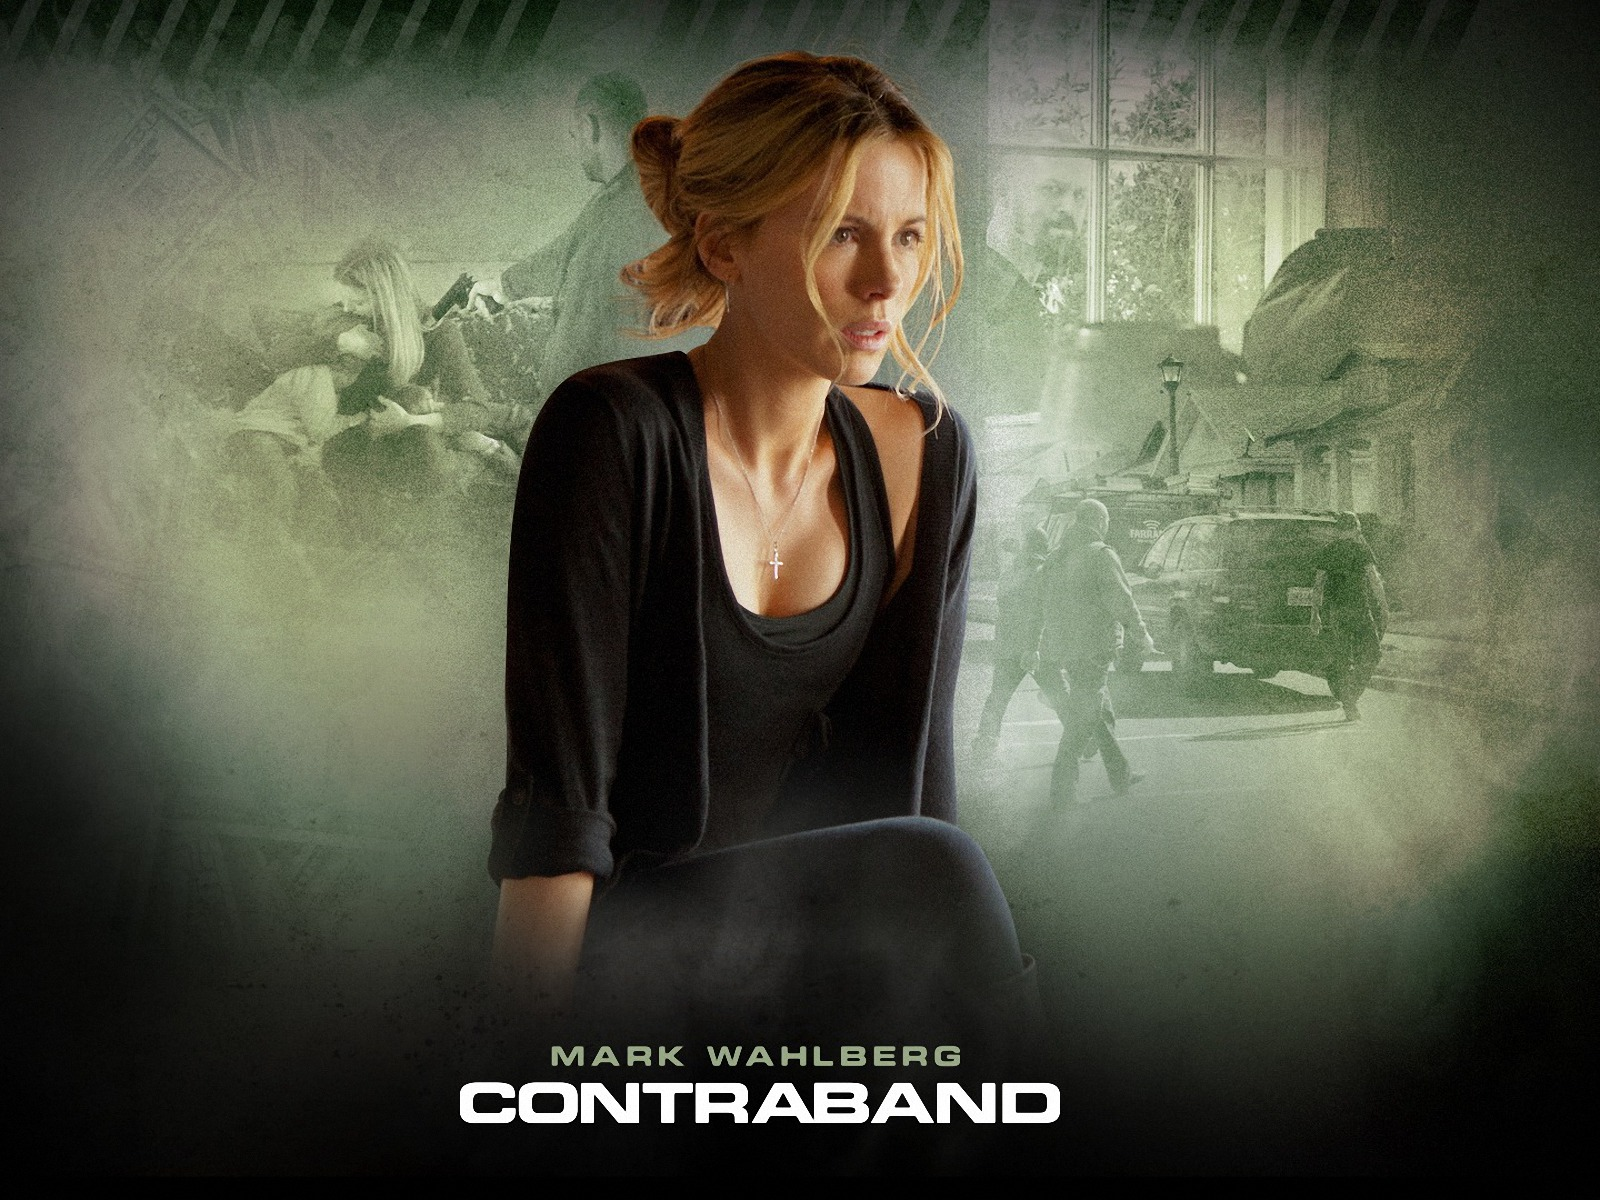 Hd Good Night Wallpaper For Mobile Contraband Kate Beckinsale Wallpapers Contraband Kate